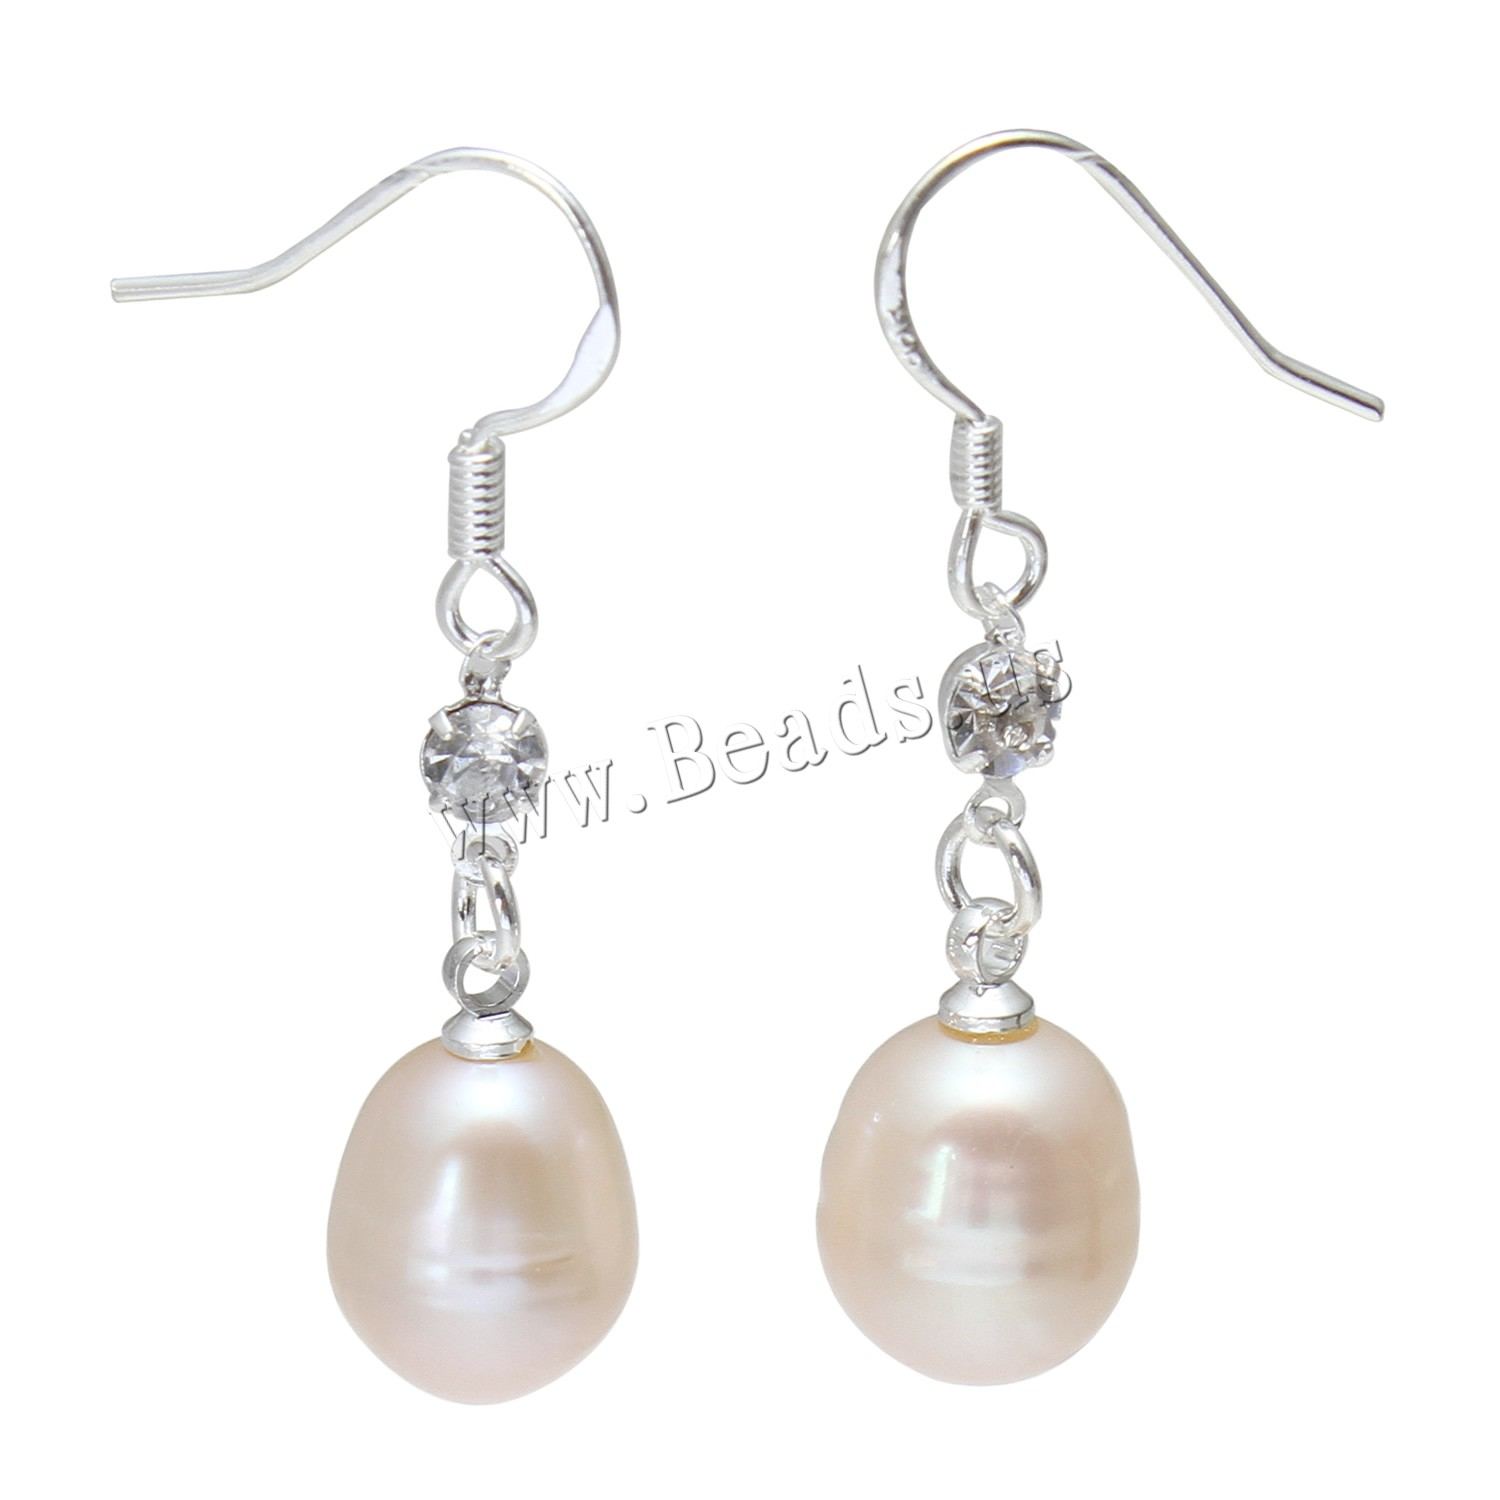 Buy Freshwater Pearl Earrings Brass Rice silver color plated woman pink 10-11mmuff0c39mm Sold Pair